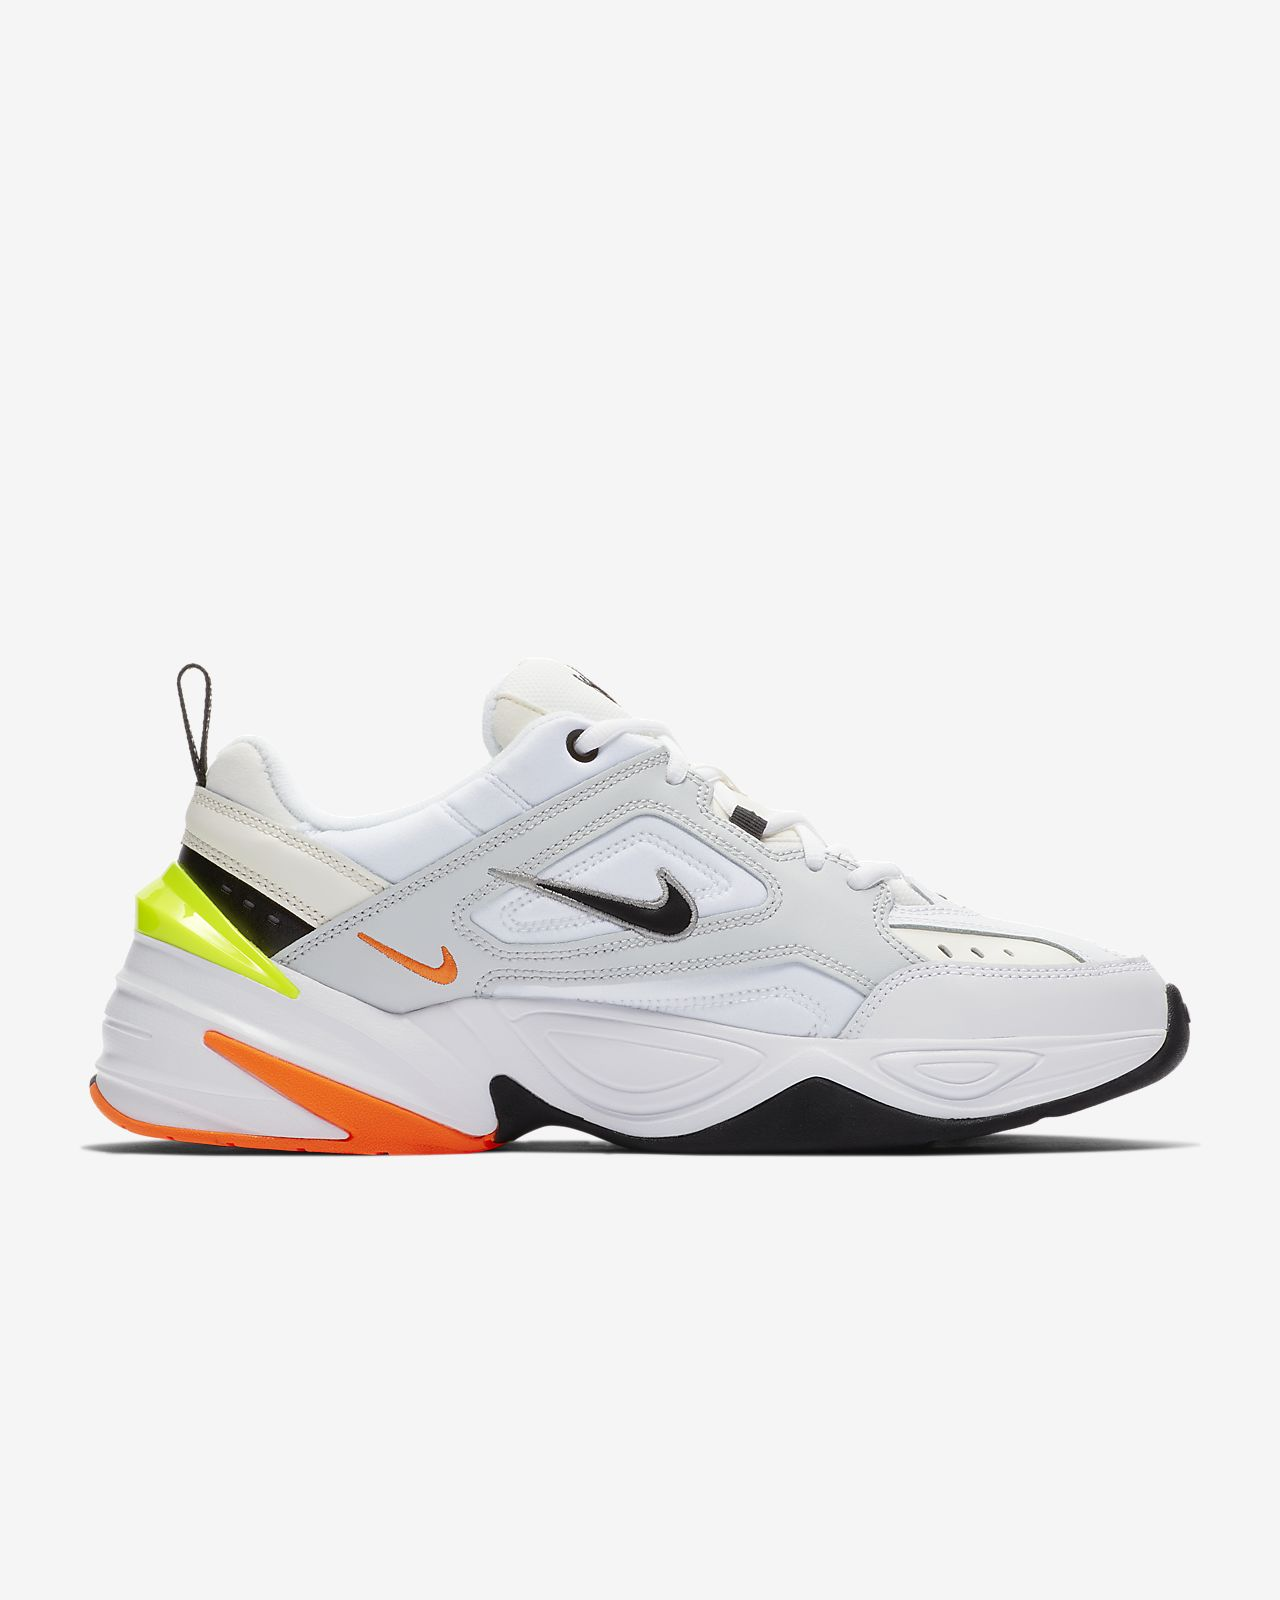 timeless design 045f2 95627 ... Chaussure Nike M2K Tekno pour Homme